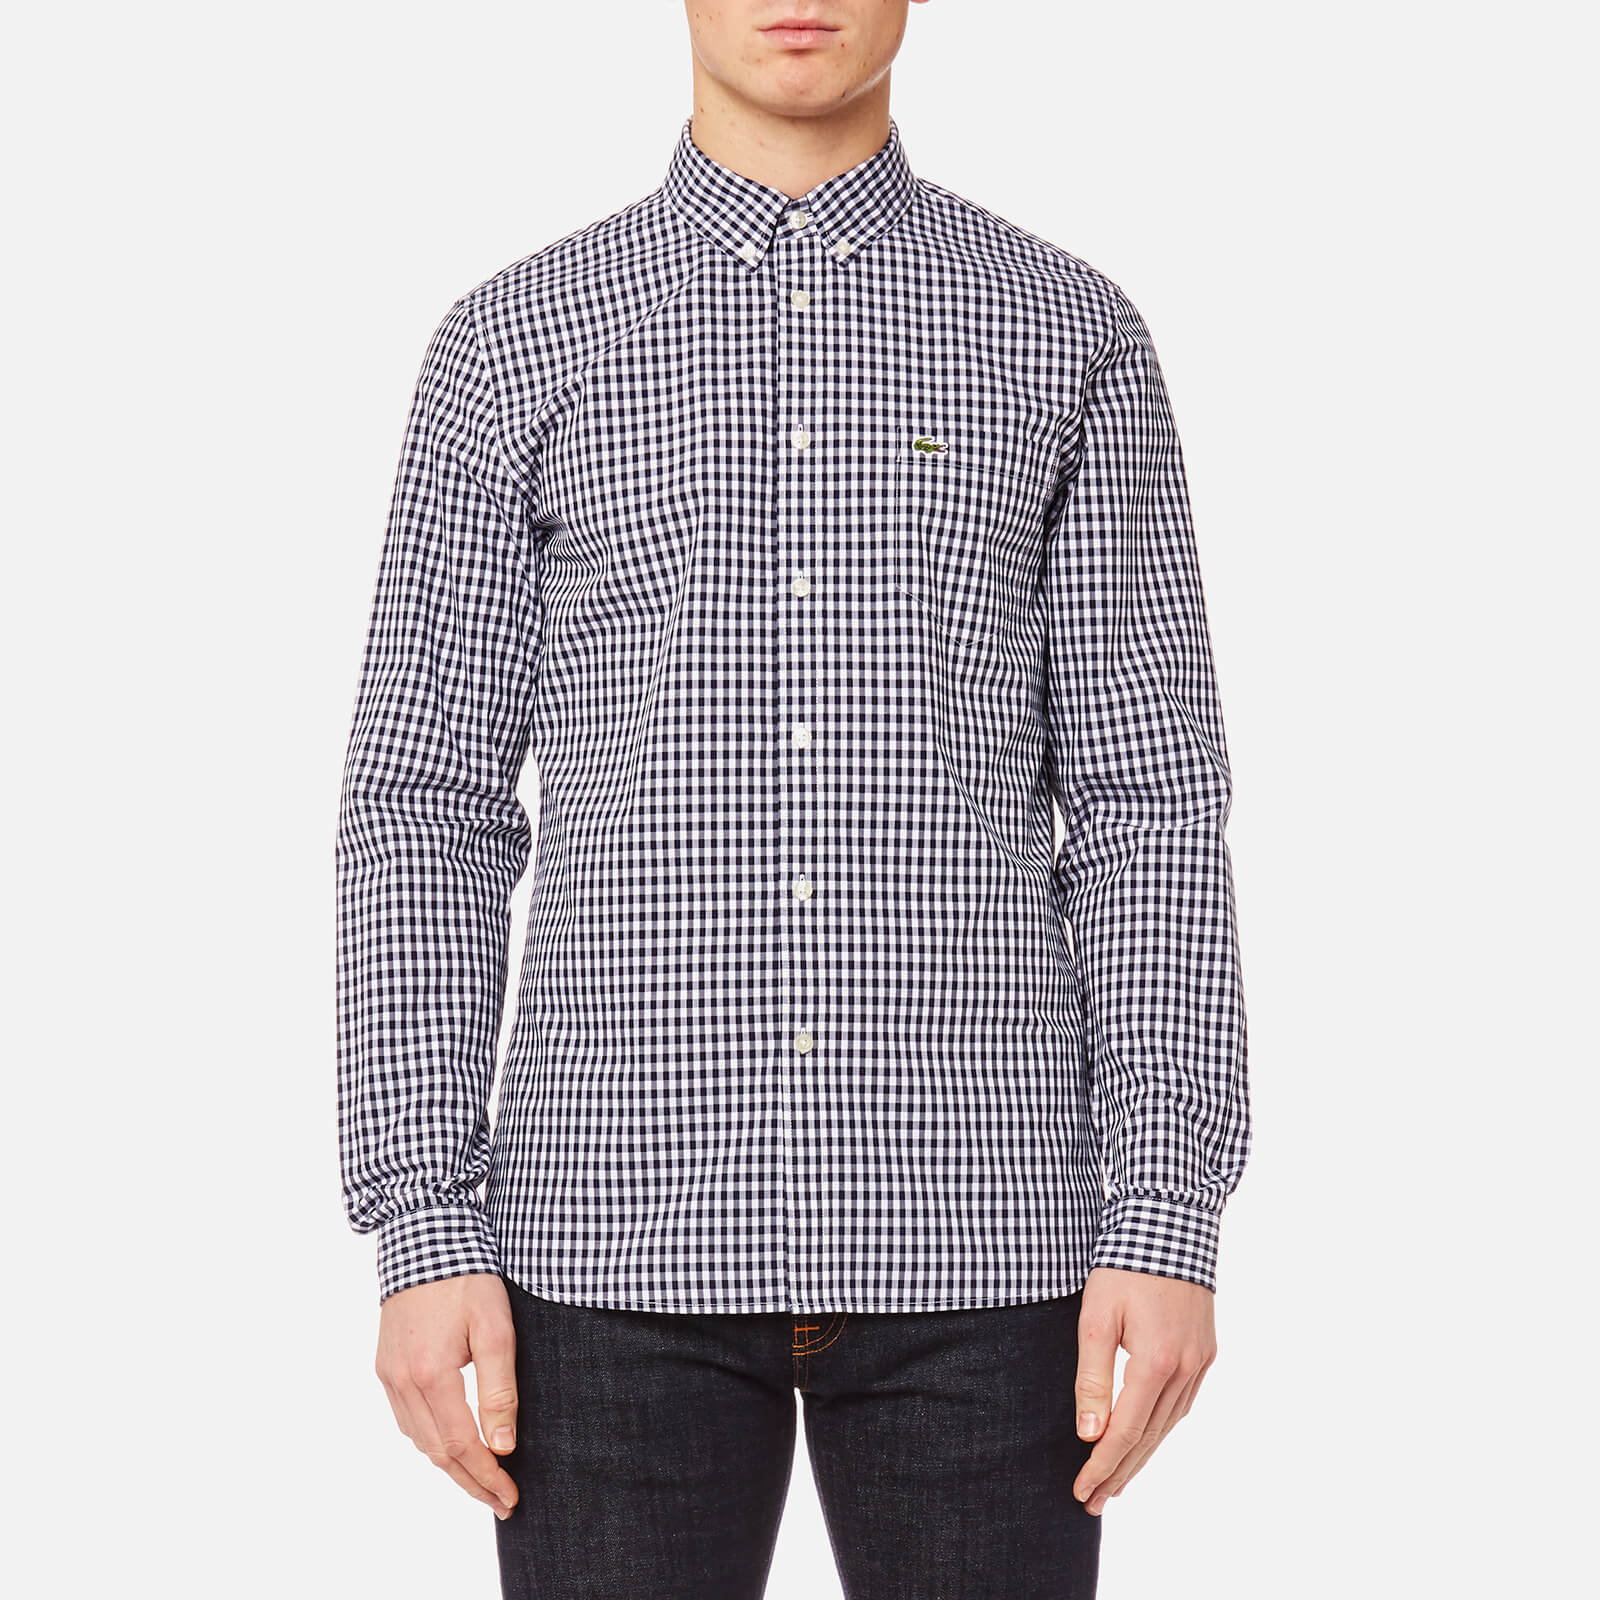 fb0e8c59551d7 Lacoste Men s Gingham Long Sleeve Shirt - Navy Blue White - Free UK  Delivery over £50